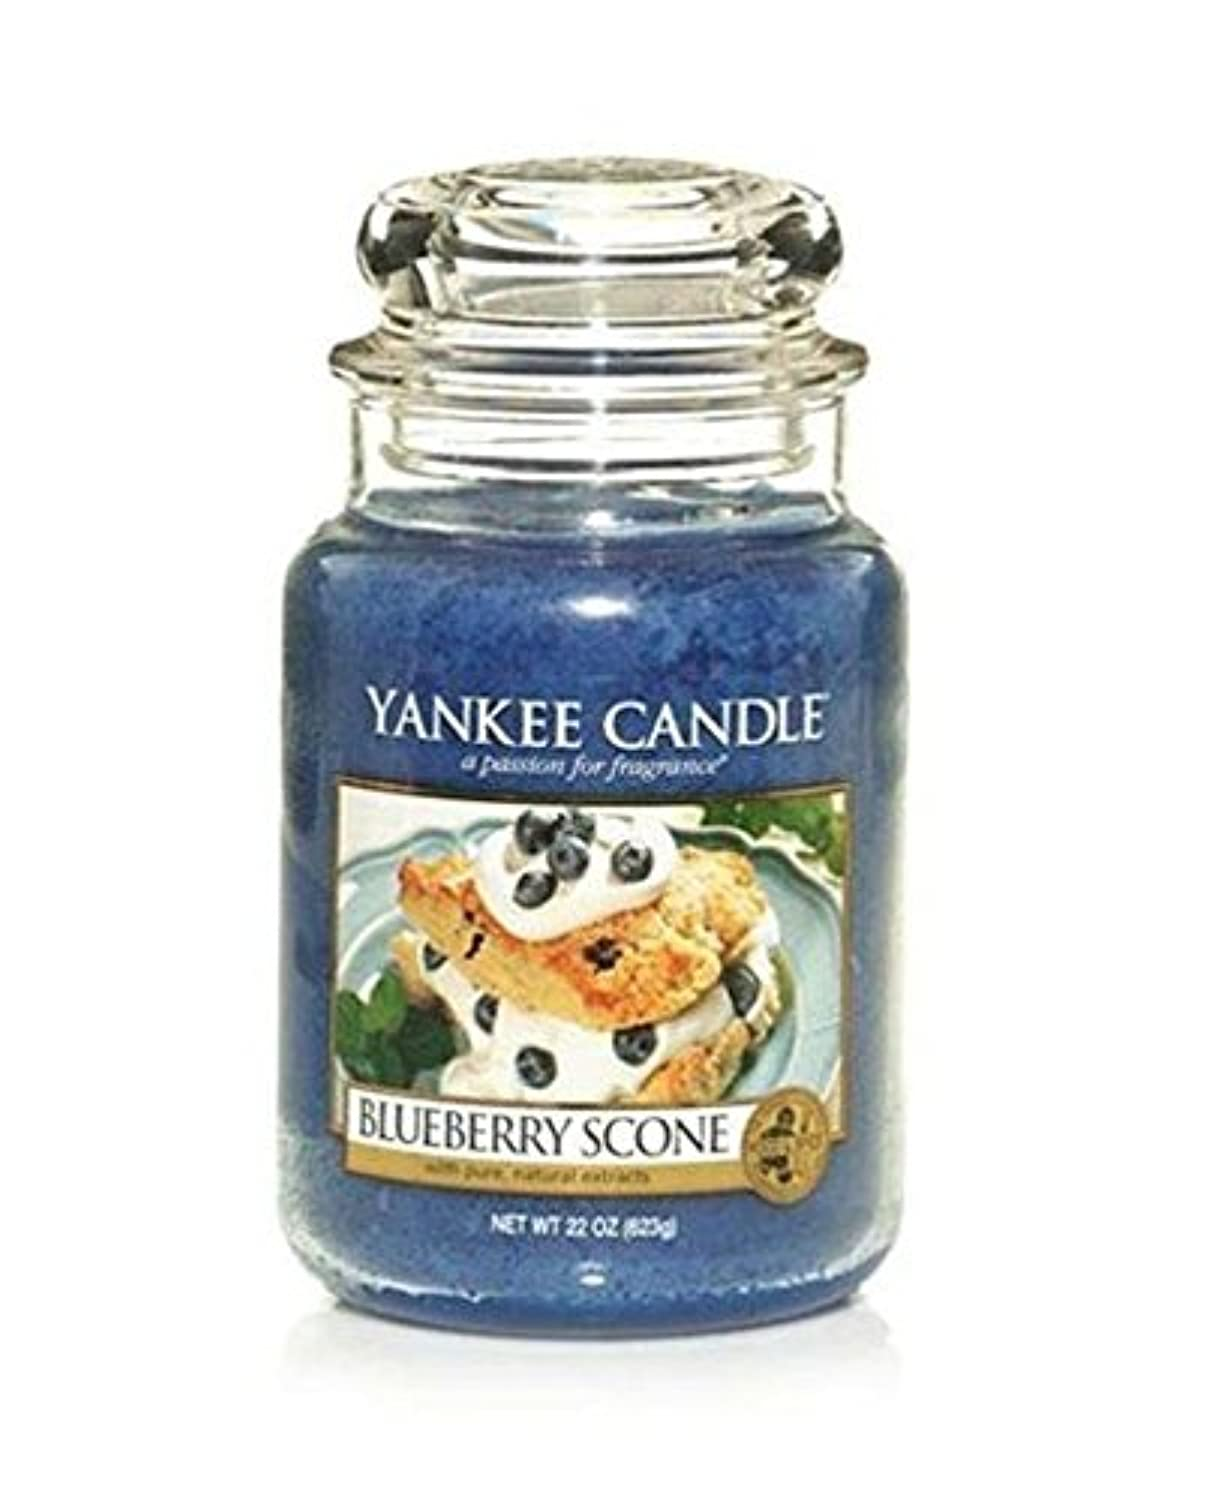 Yankee Candle Blueberry Scone Large Jar